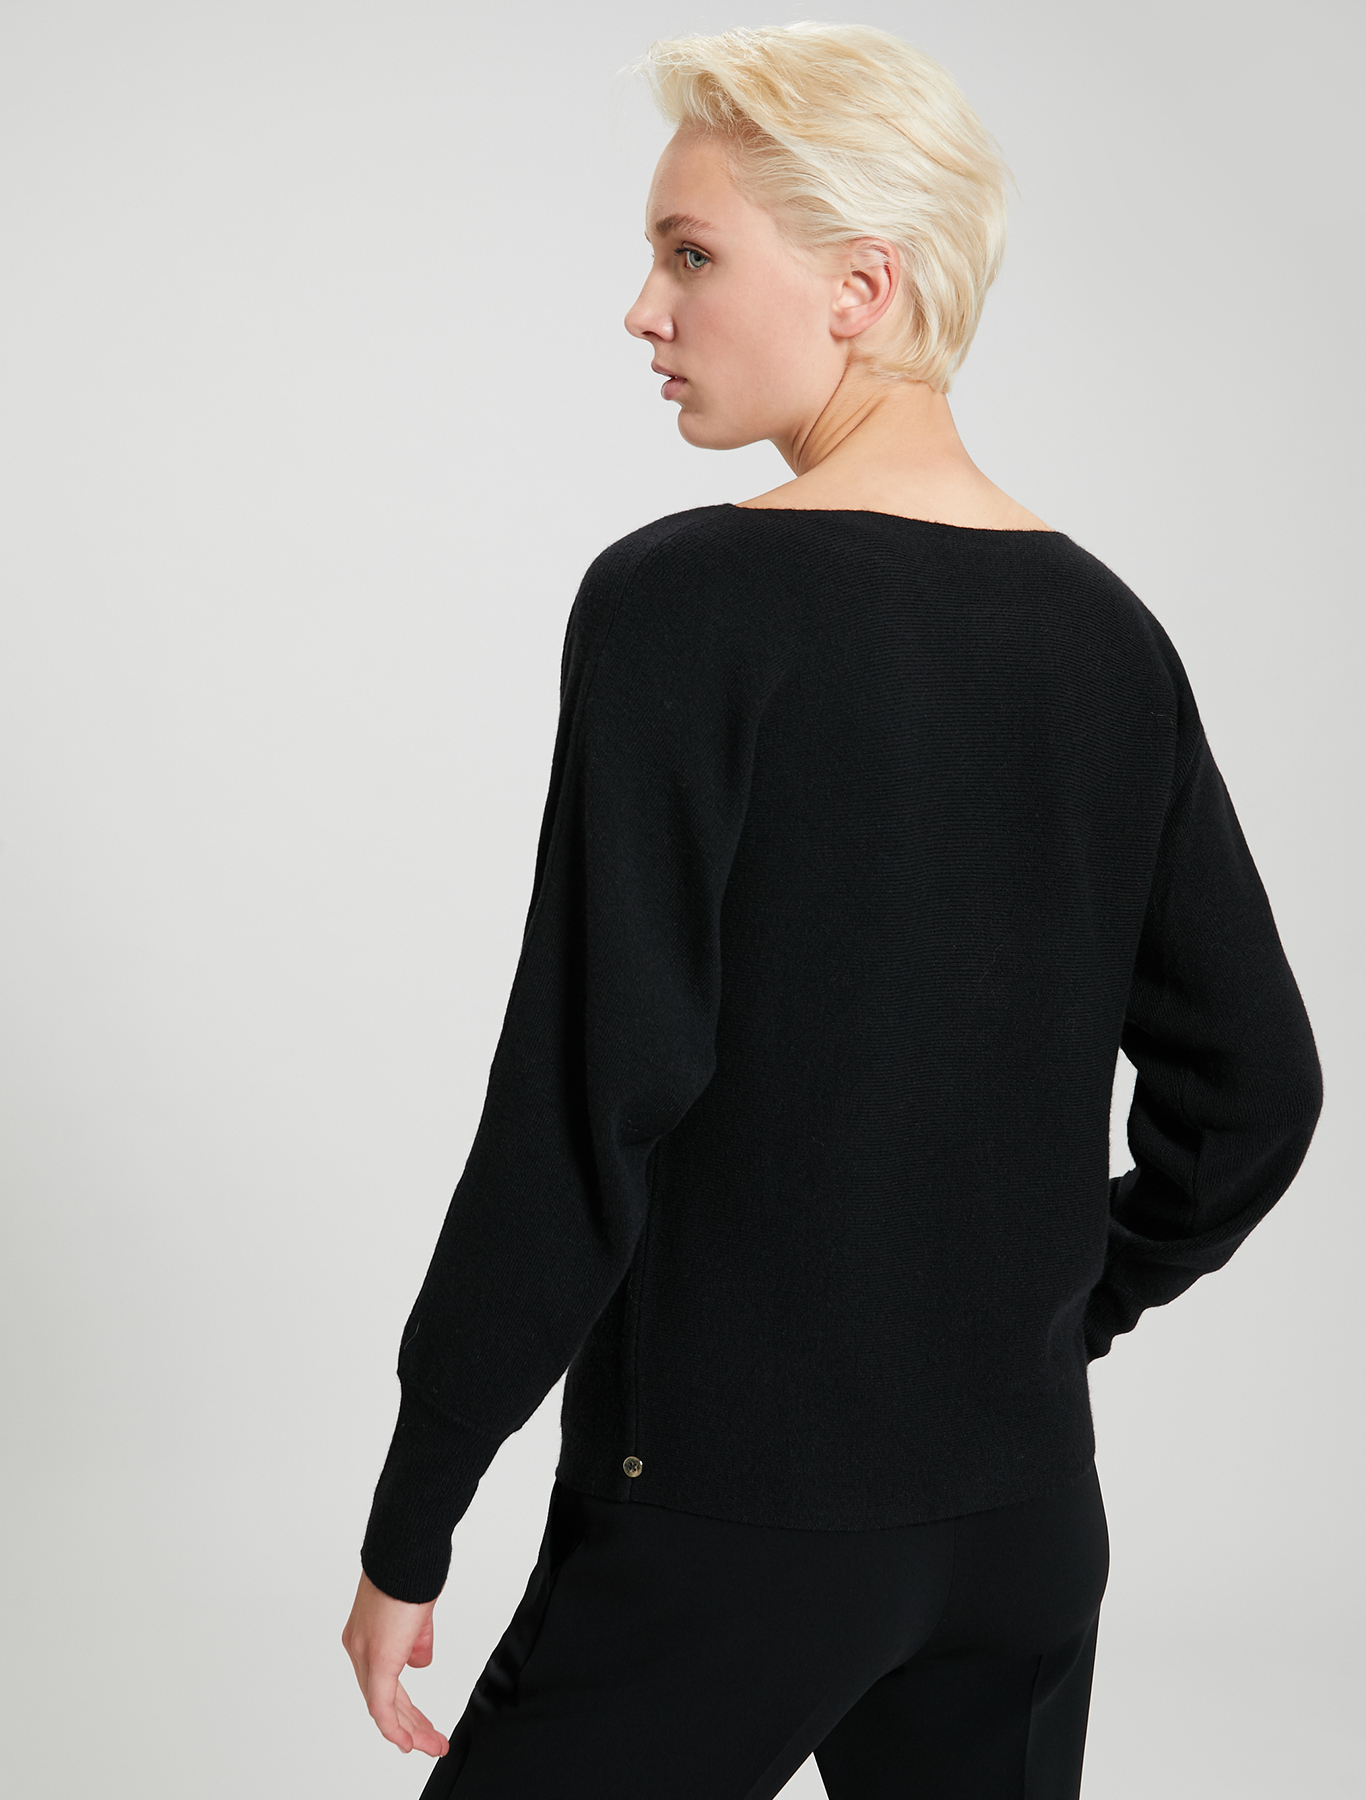 Jumper with kimono sleeves - black - pennyblack